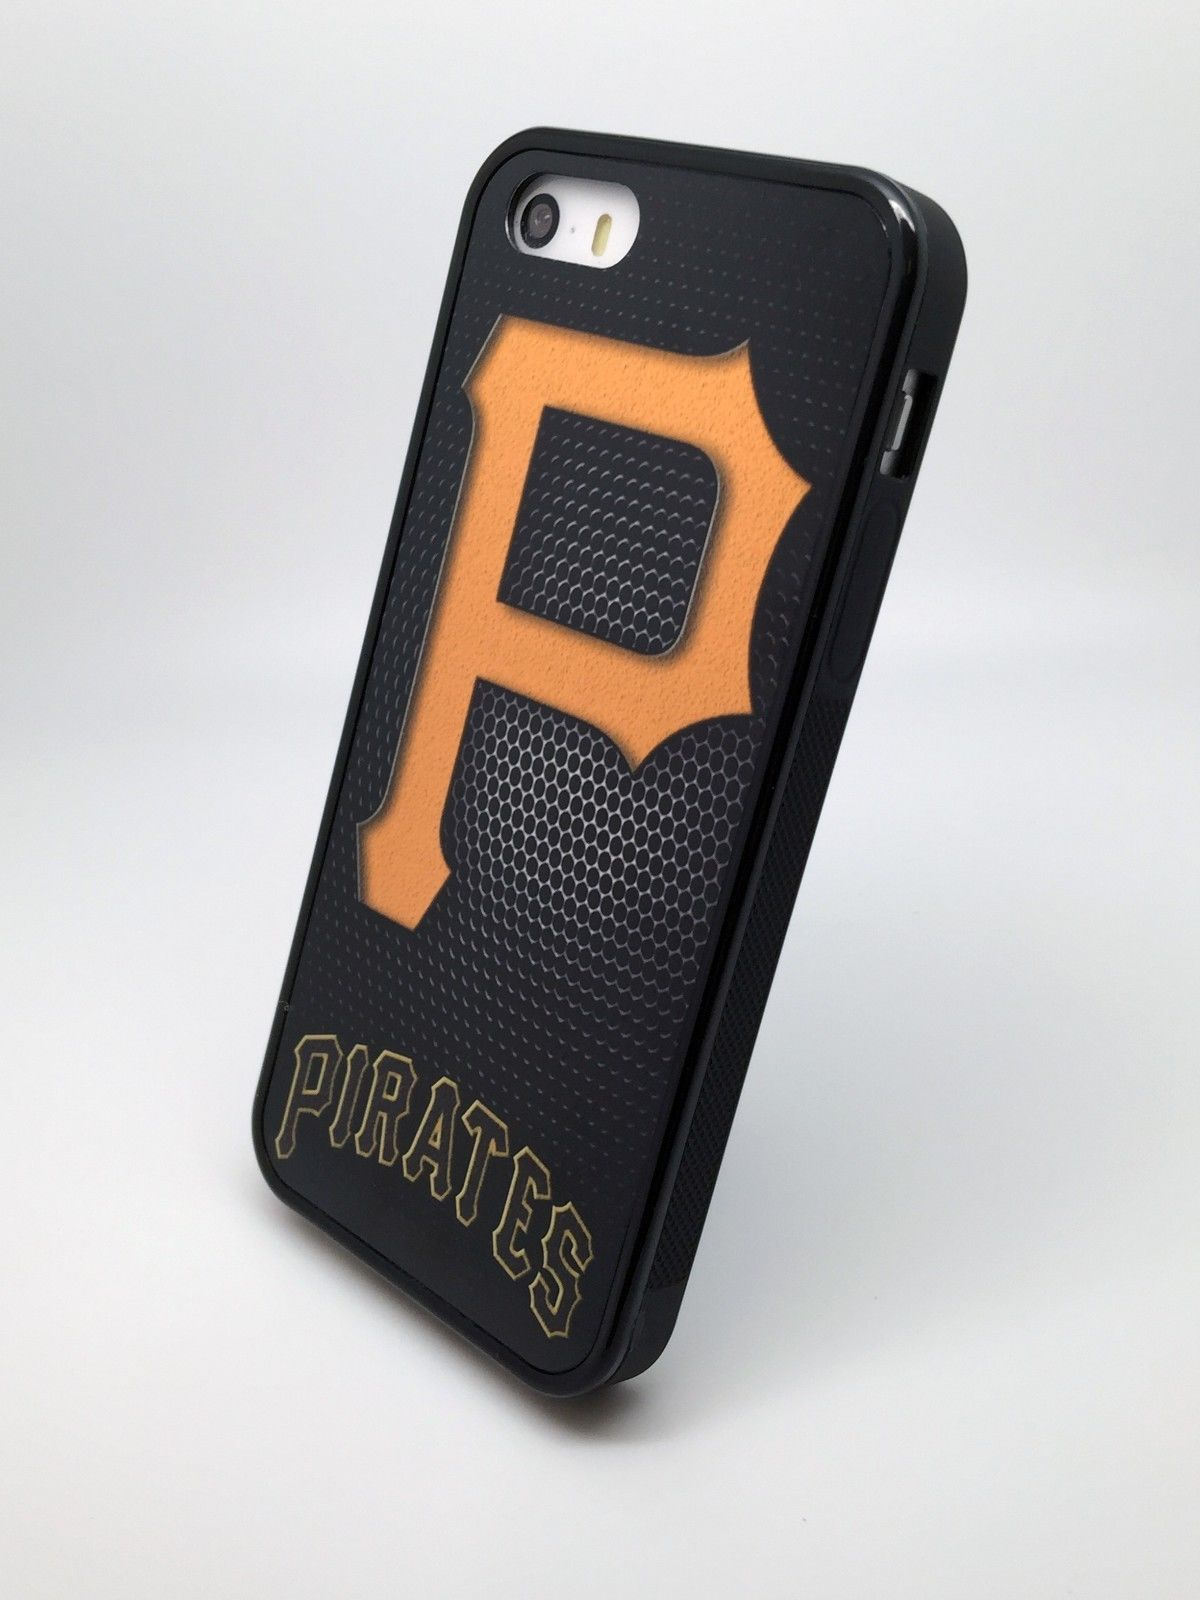 NEW PITTSBURGH PIRATES MLB BASEBALL PHONE CASE FOR iPHONE 7 6 6S PLUS 5C 5 5S 4